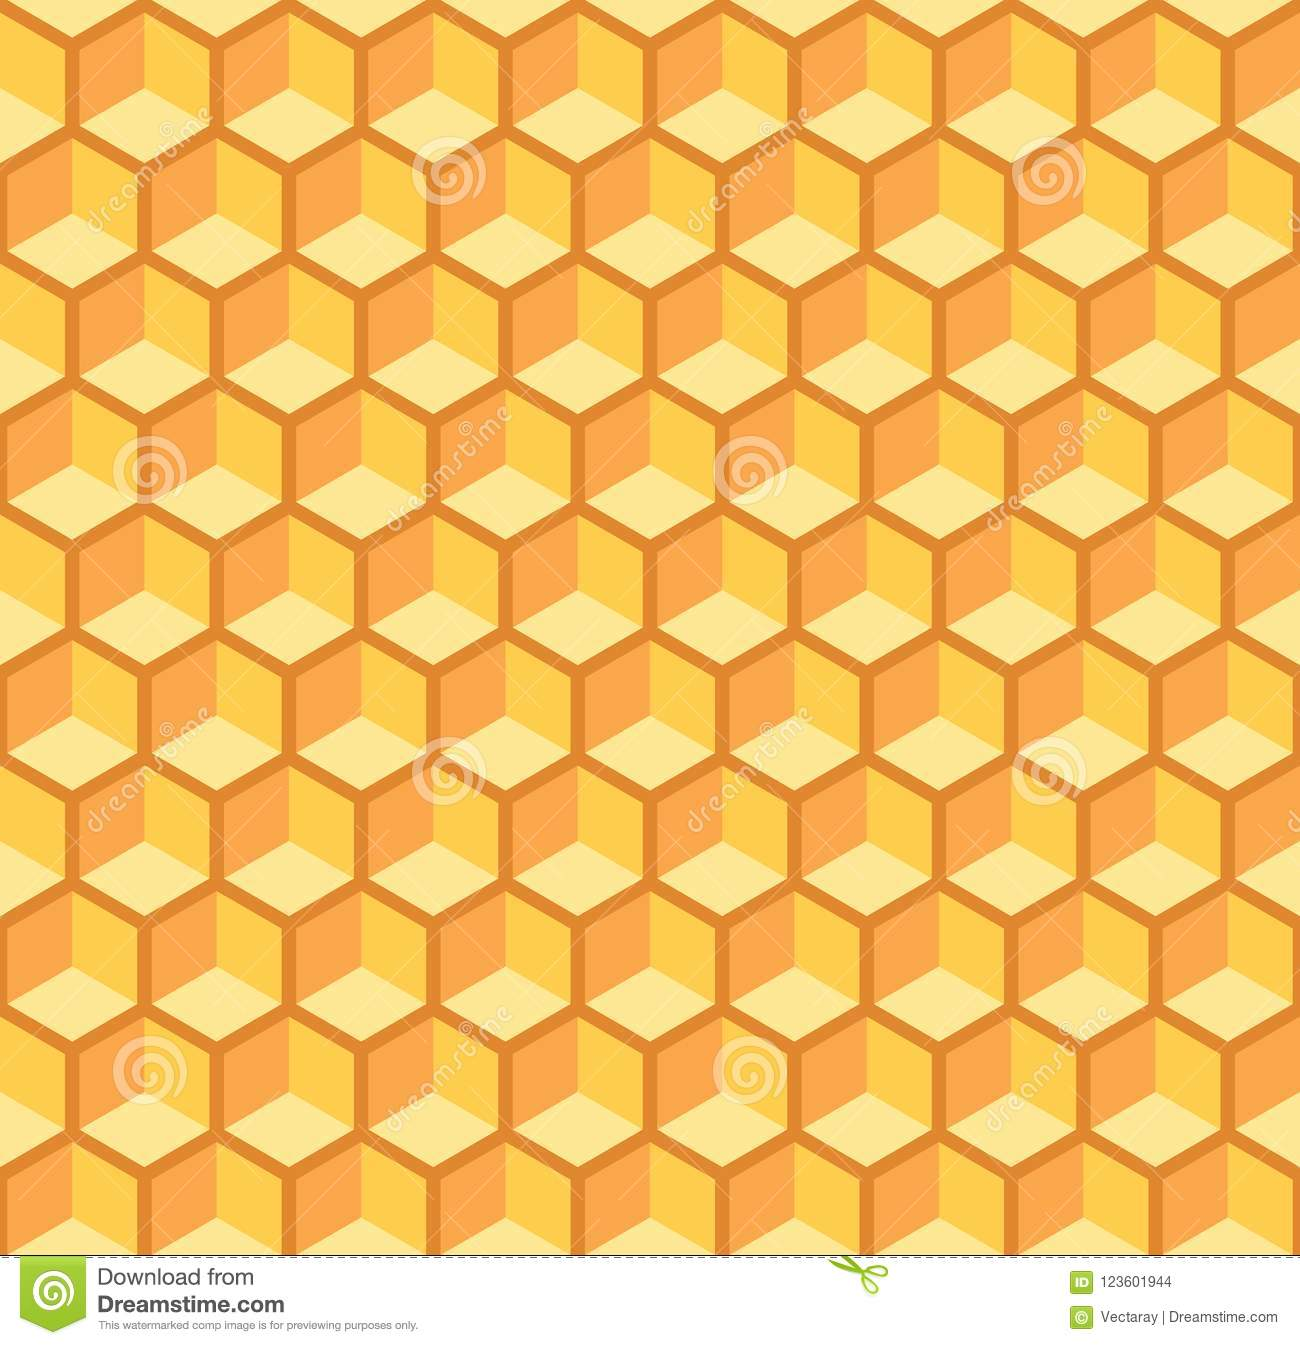 Seamless Abstract Honeycomb Pattern Background. Ideal For